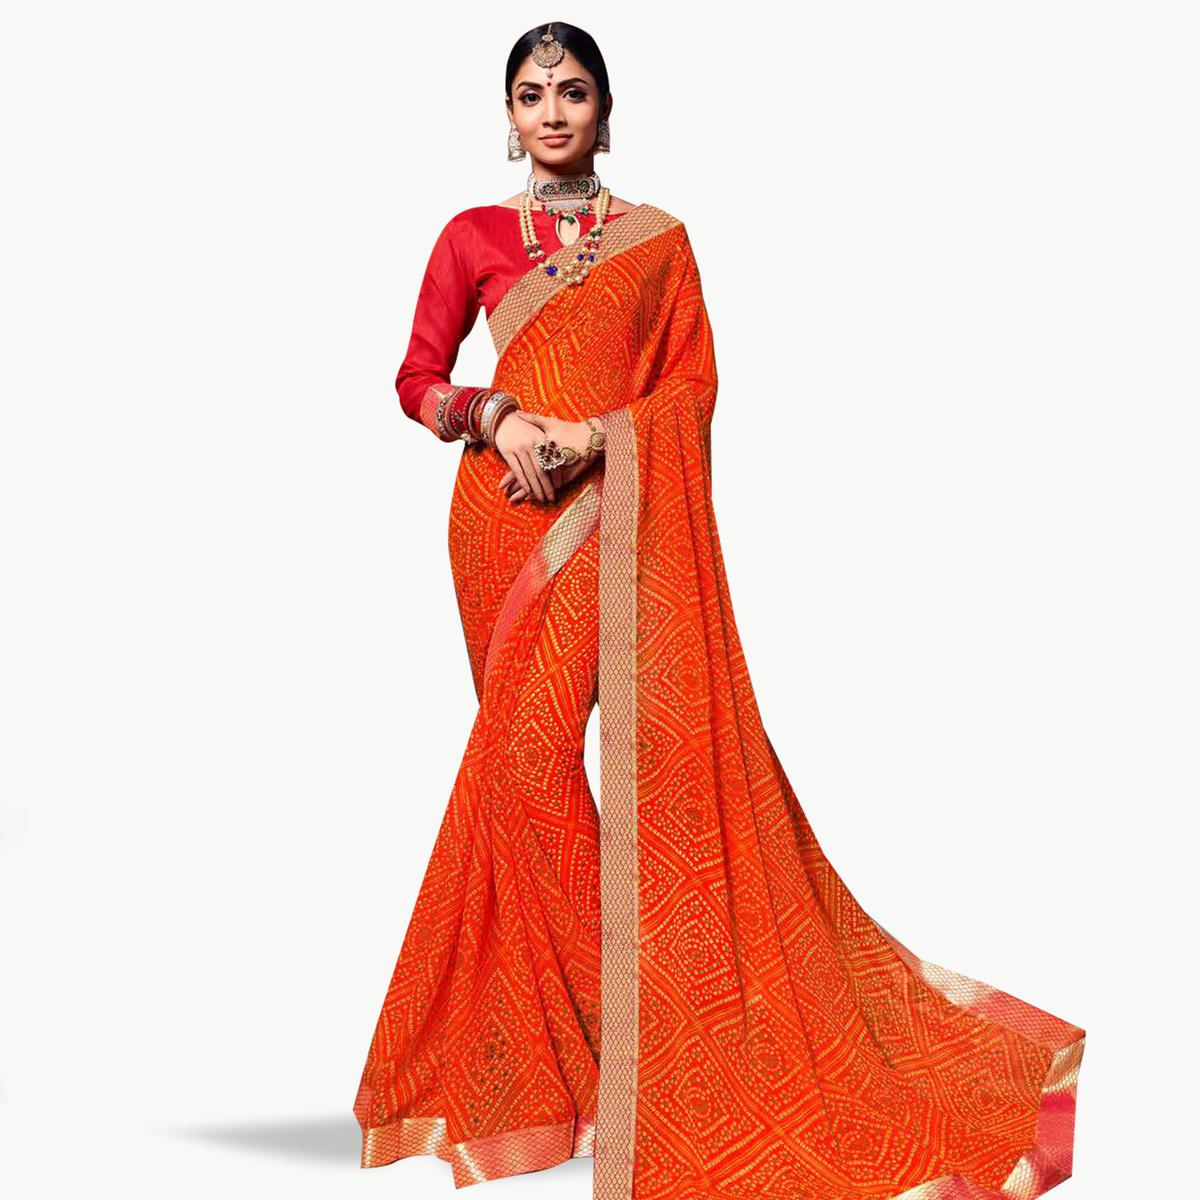 Fantastic Orange Colored Bandhani Printed Heavy Georgette Saree With Jacquard Lace Border